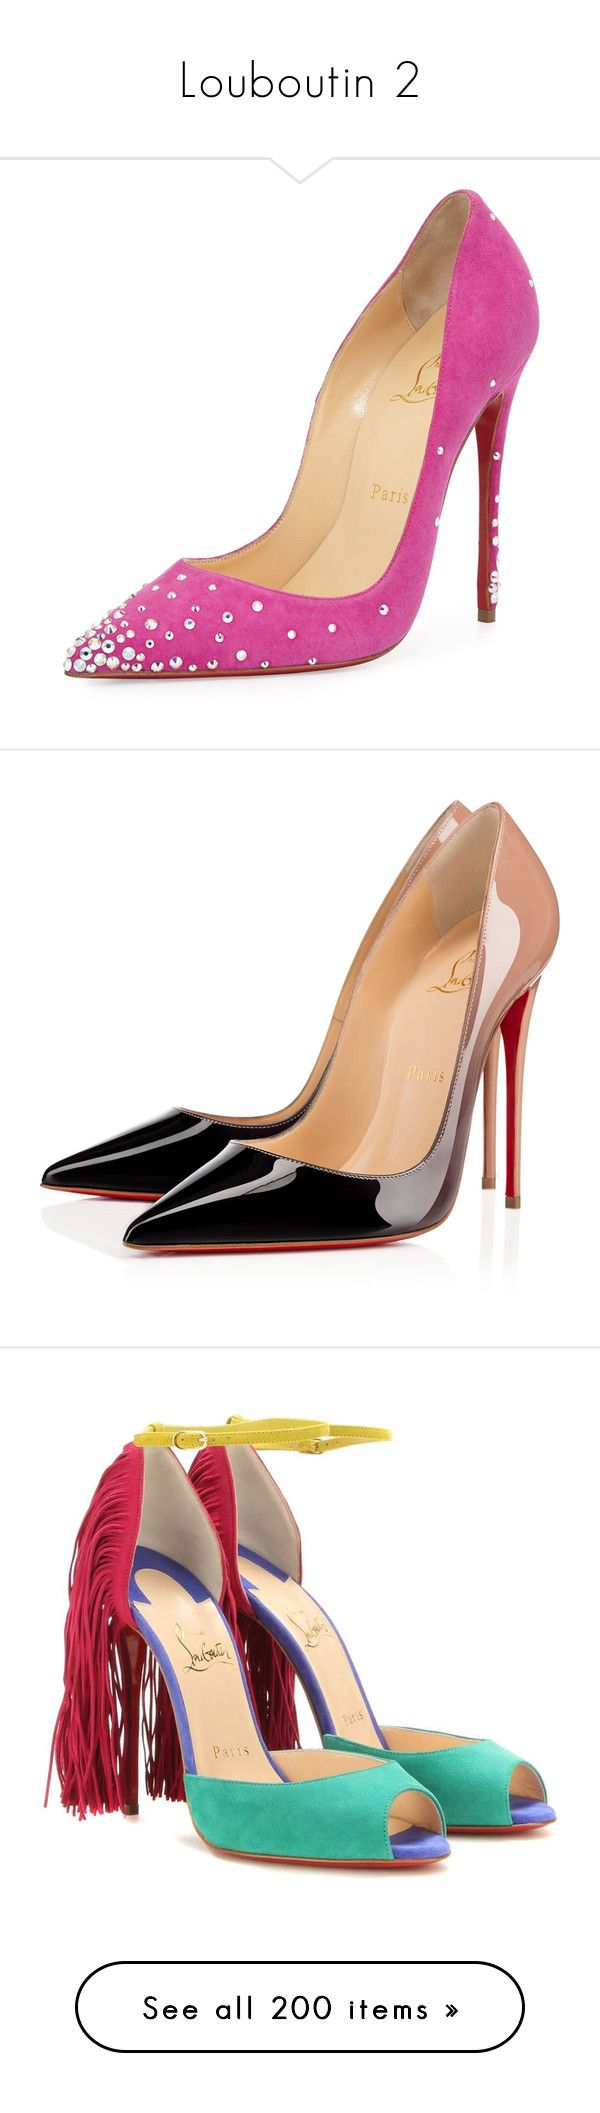 """""""Louboutin 2"""" by jckyleeah ❤ liked on Polyvore featuring shoes, pumps, heels, christian louboutin, scarpe, indian rose, pointed toe shoes, heels & pumps, high heel pumps and slip-on shoes"""